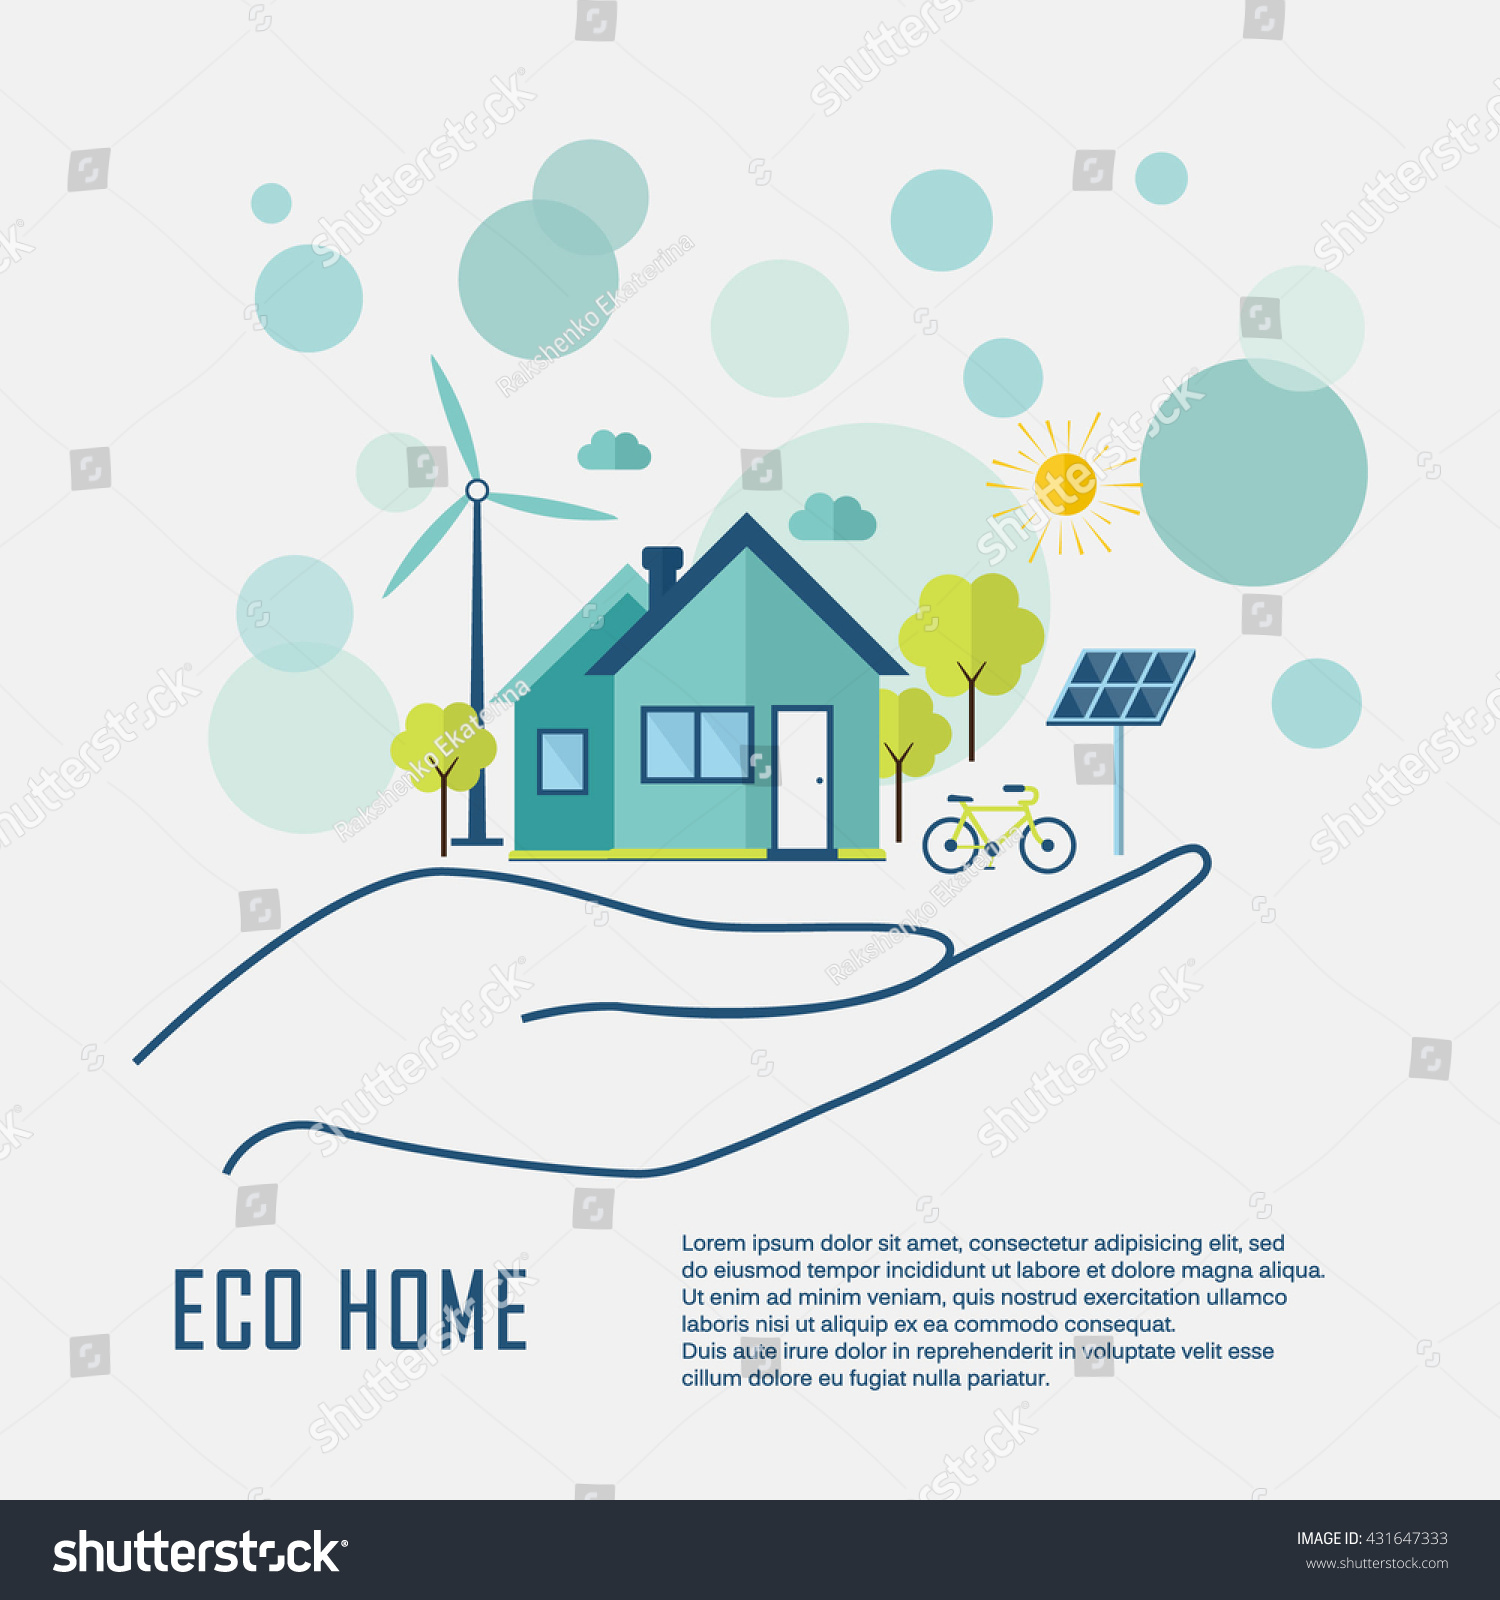 Eco Home Flat Design Ecology Concept Stock Vector HD (Royalty Free ...